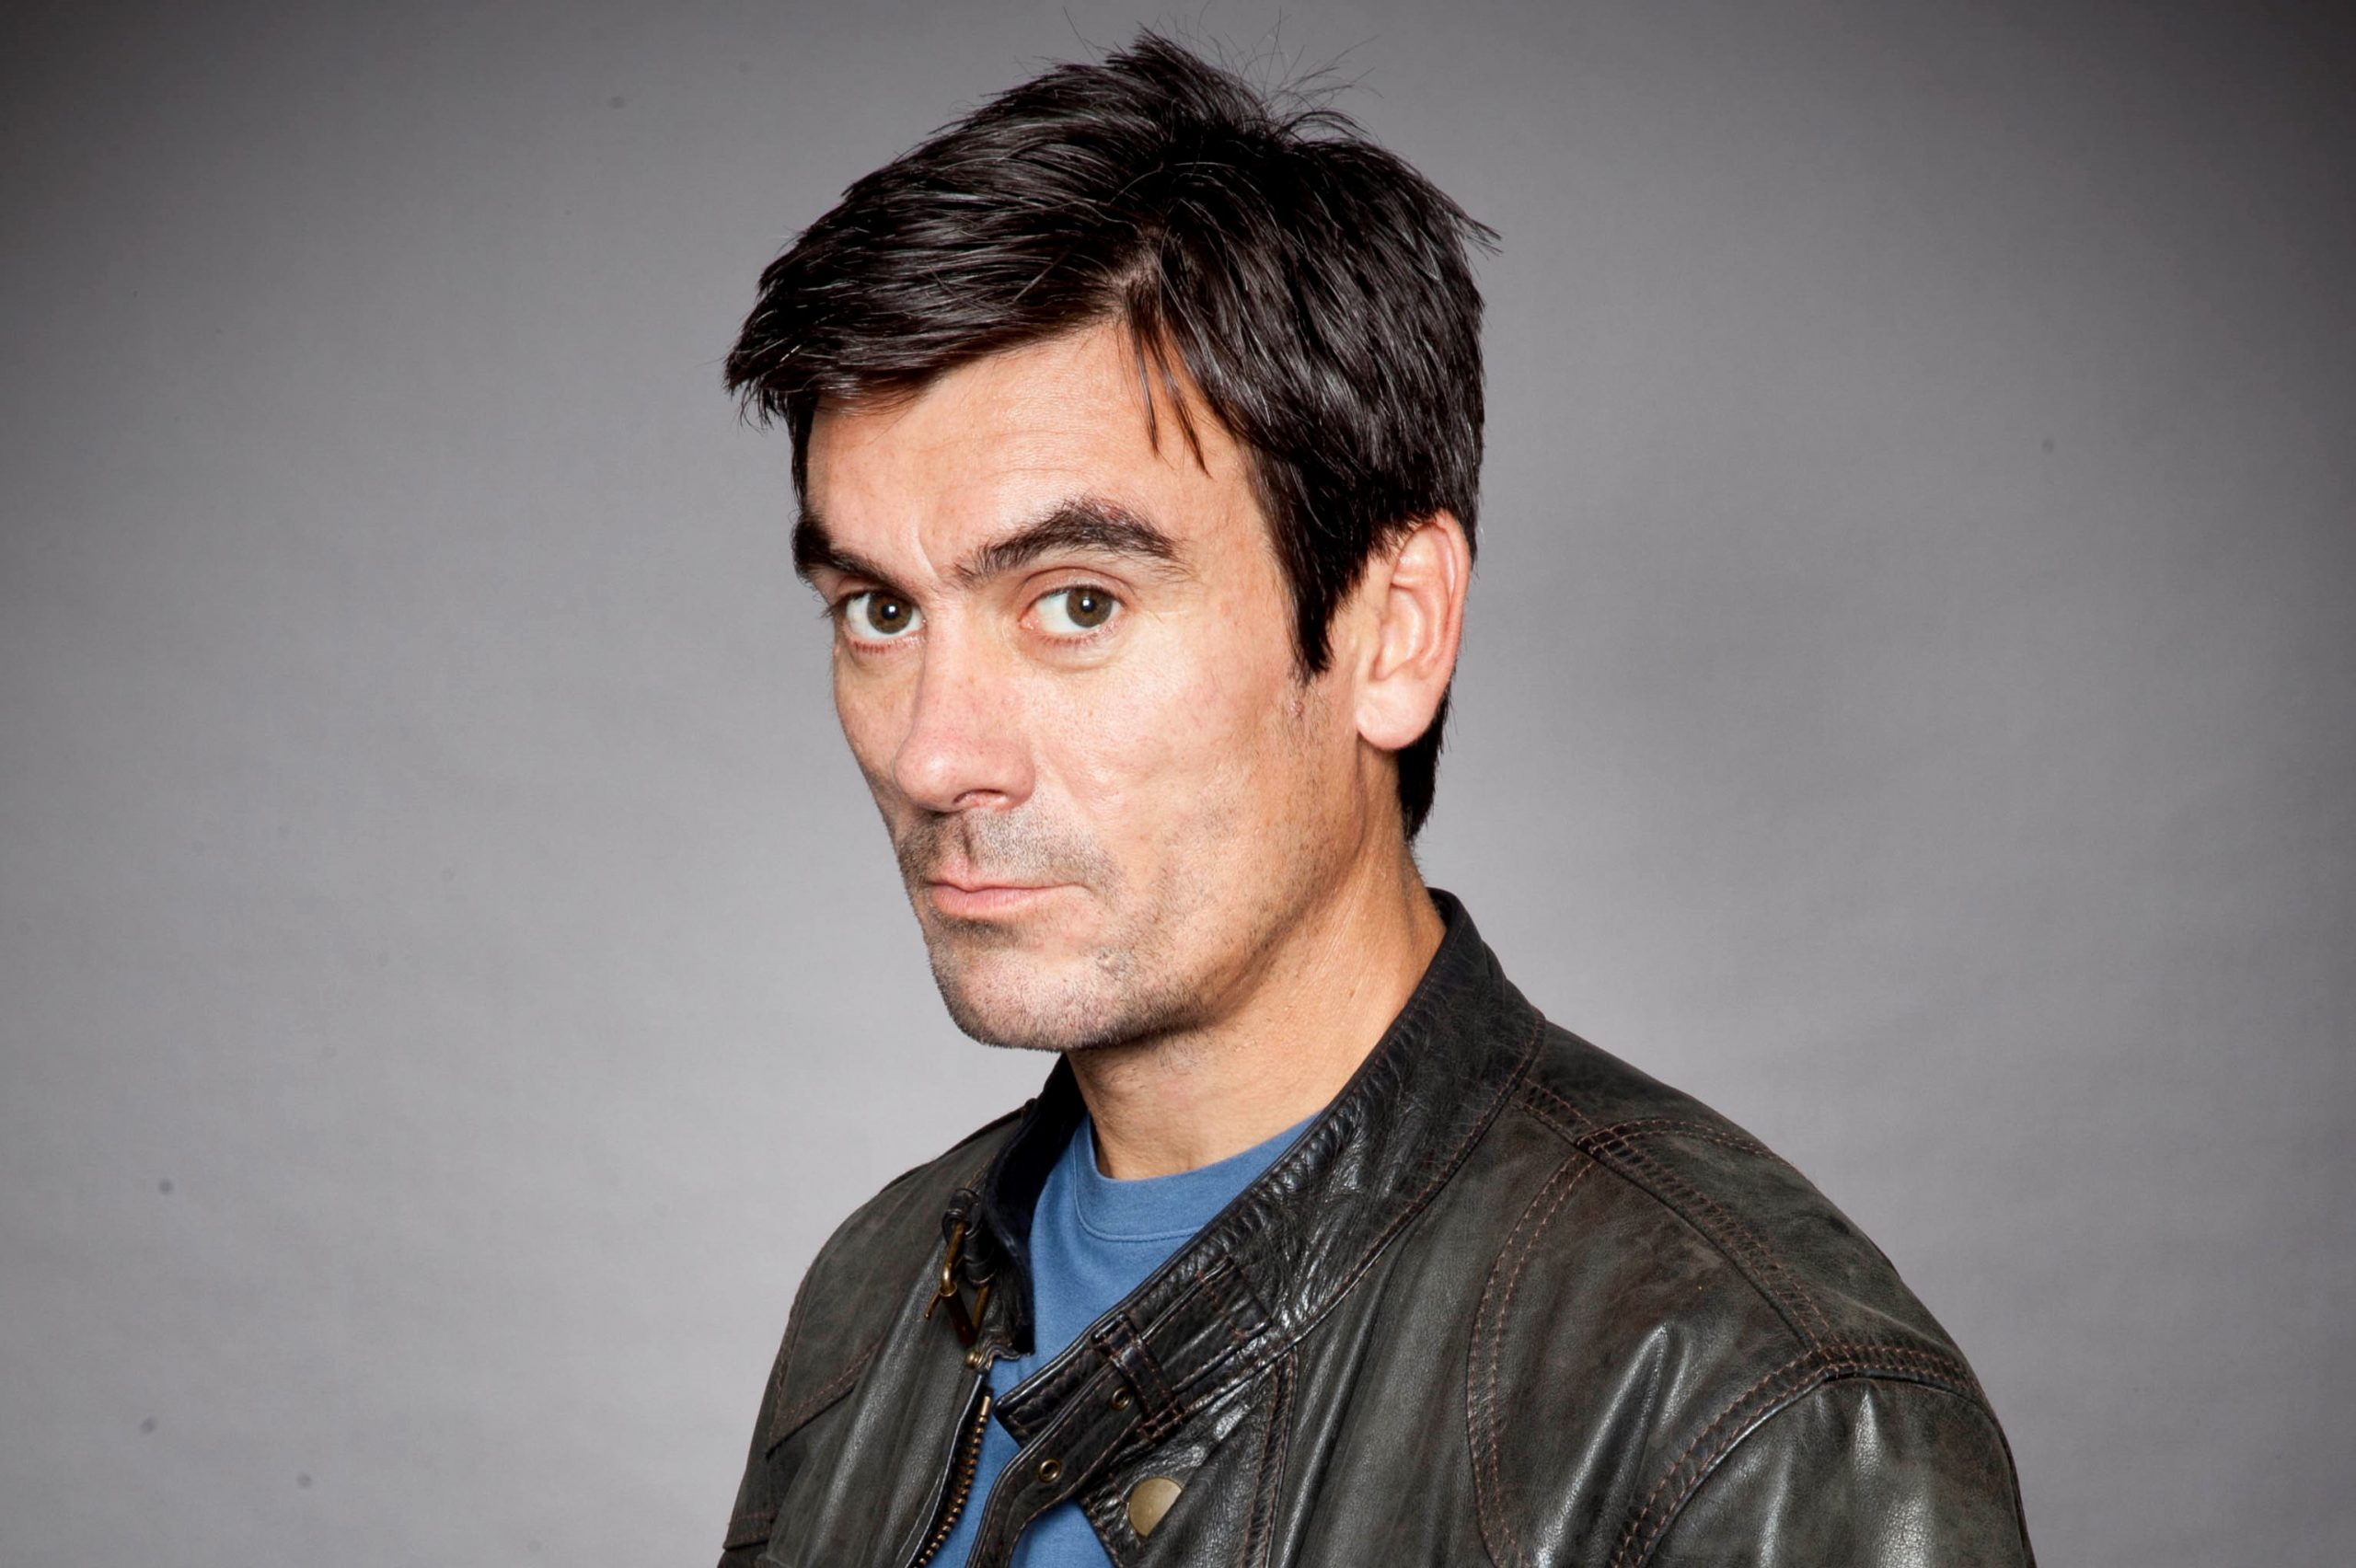 Does Cain die in Emmerdale? Jeff Hordley discusses 'end of the line' for his character